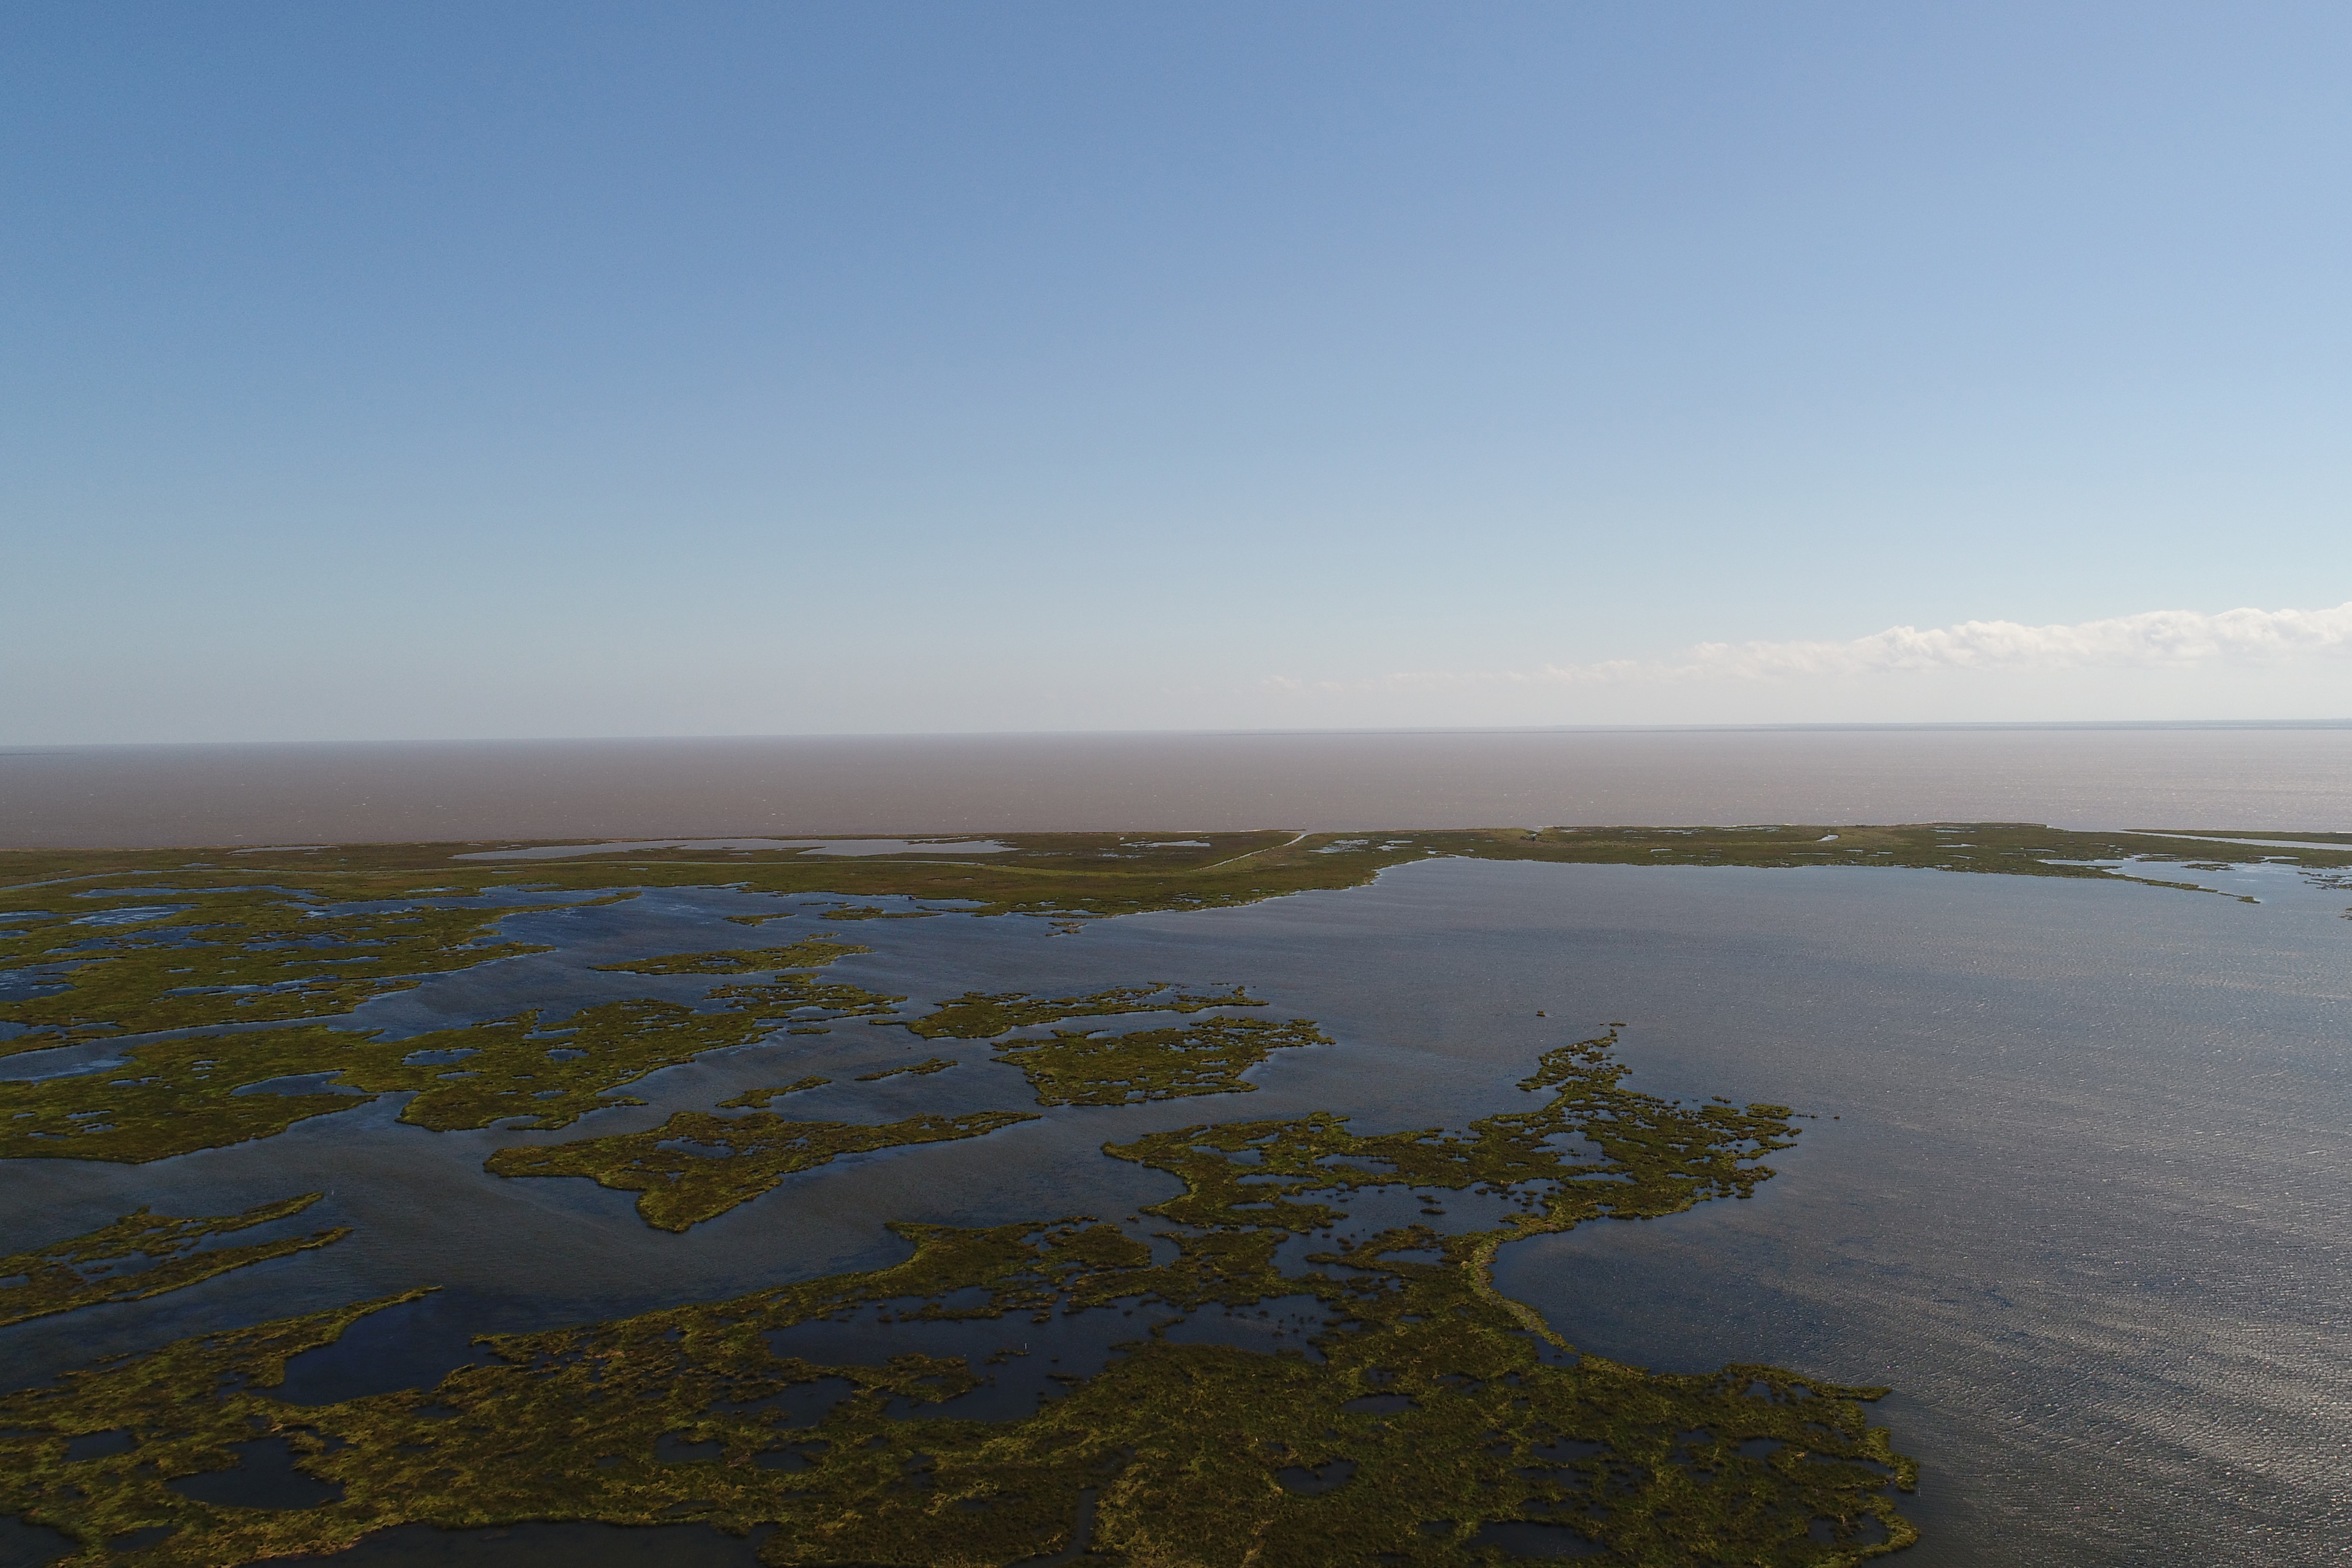 Aerial view of the Golden Triangle marsh restoration area. Green marsh is surrounded by open water in the Gulf of Mexico.